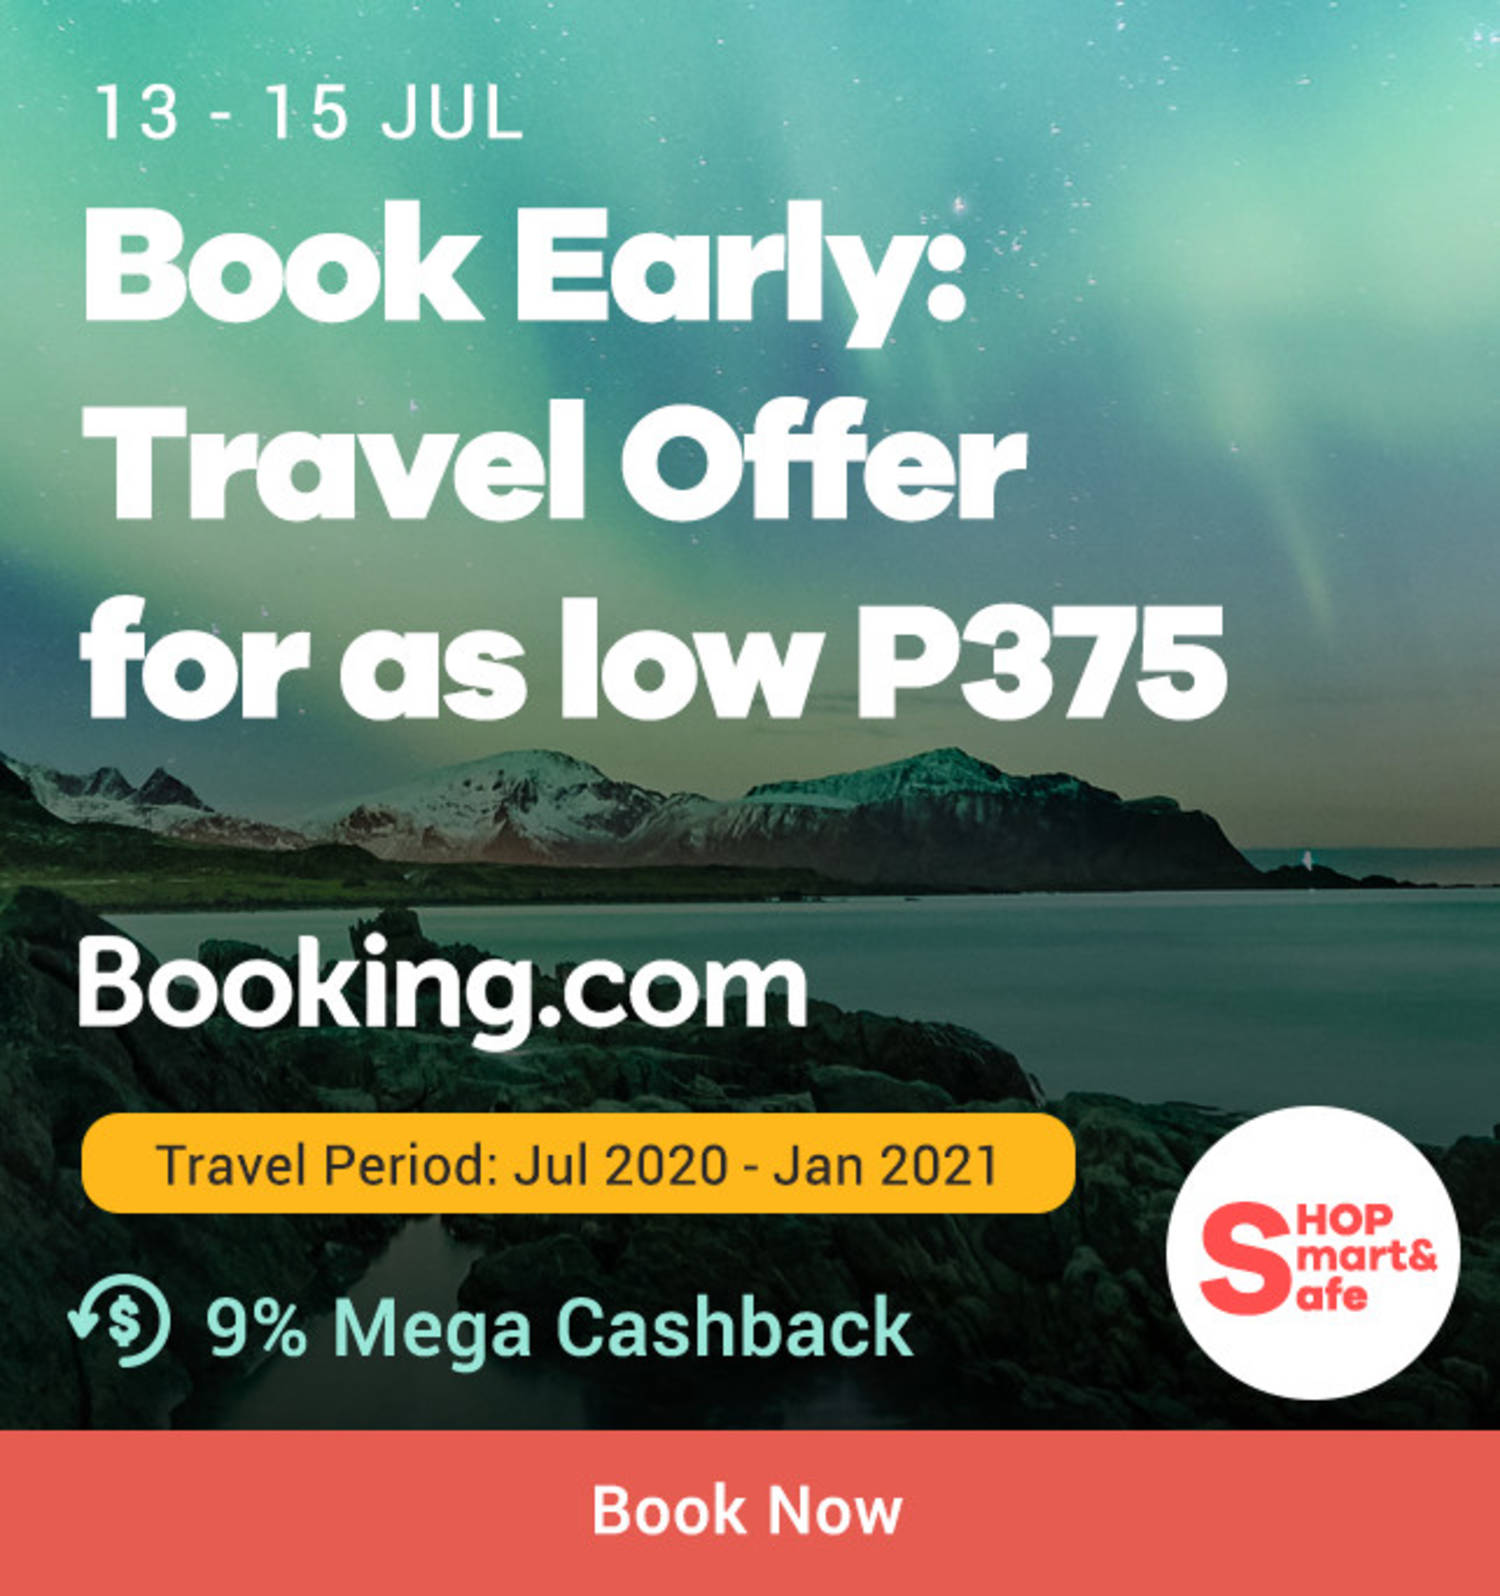 Booking.com: Book Early Travel Offer for as low as P375